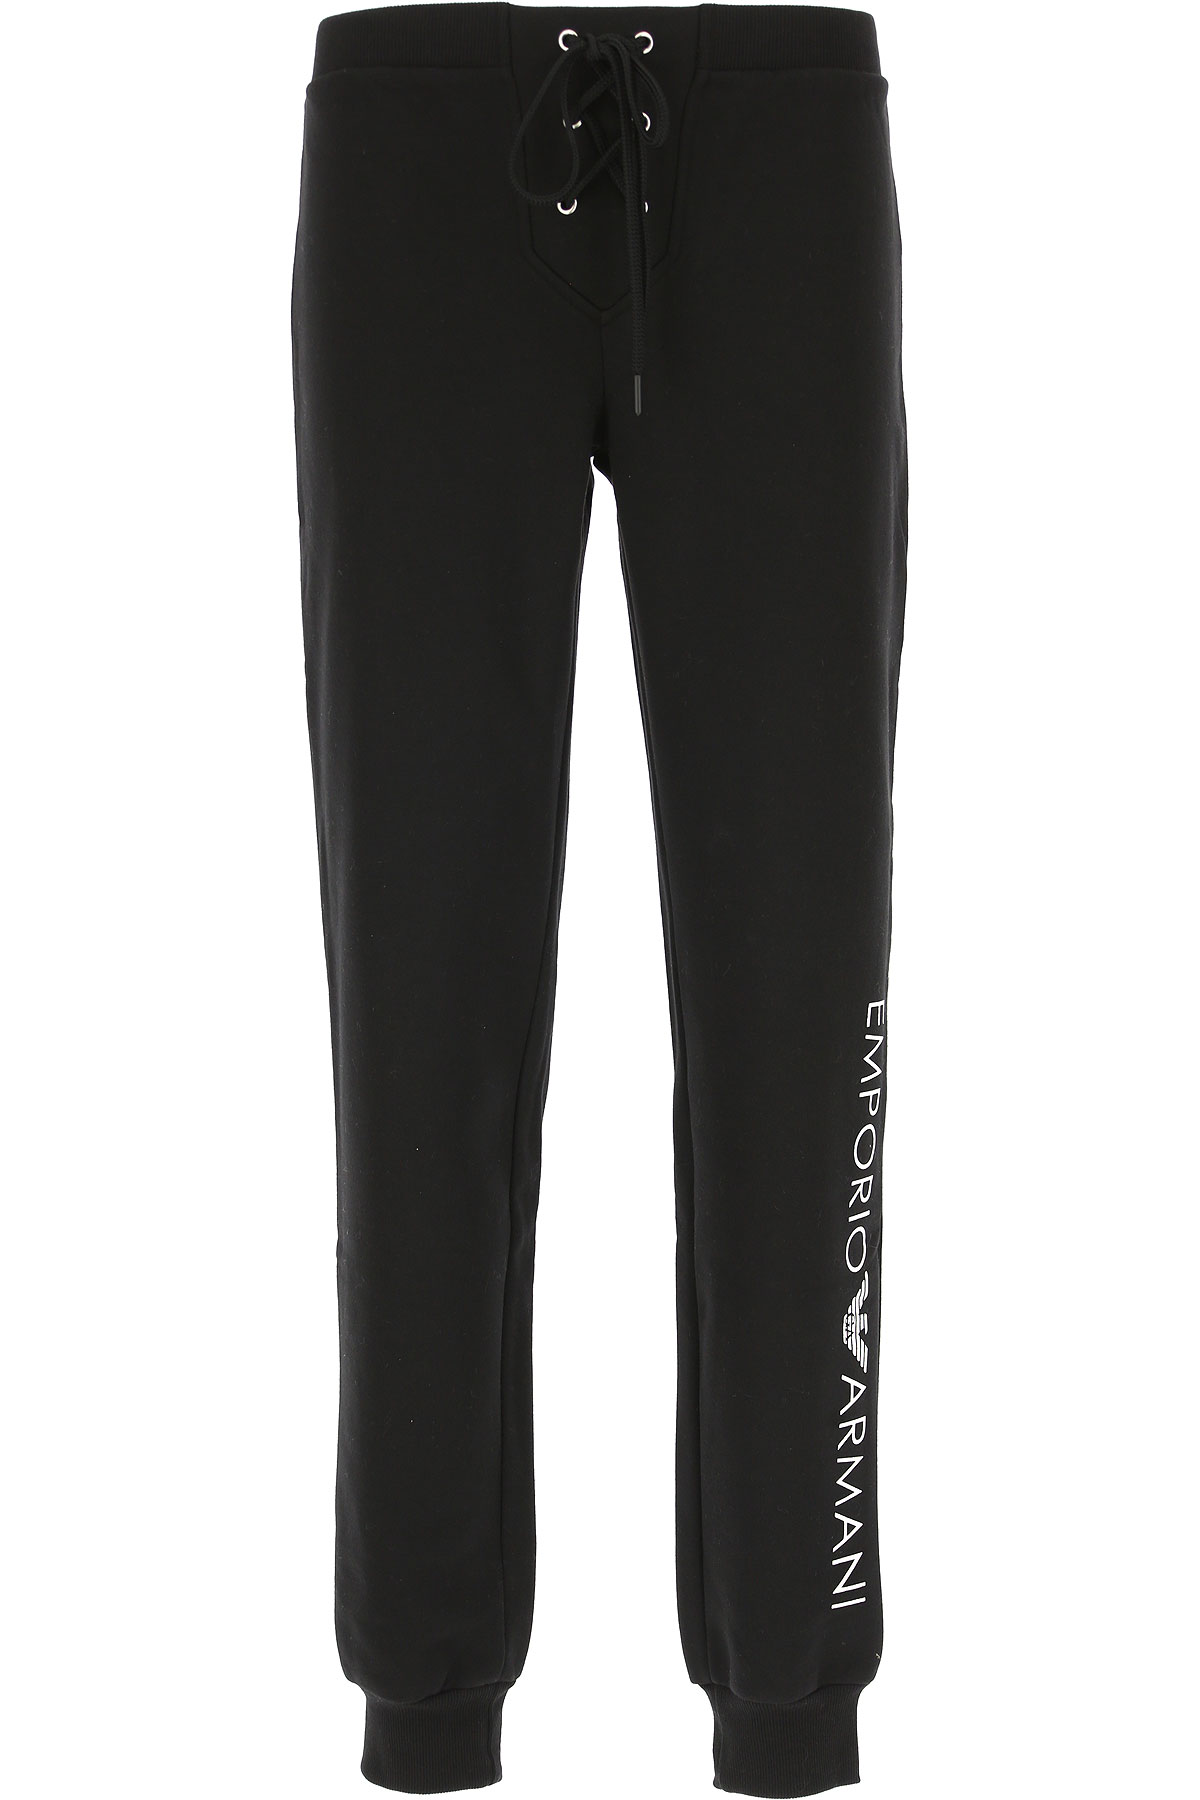 Image of Emporio Armani Women\'s Sportswear for Gym Workouts and Running, Black, Cotton, 2017, 10 2 4 6 8